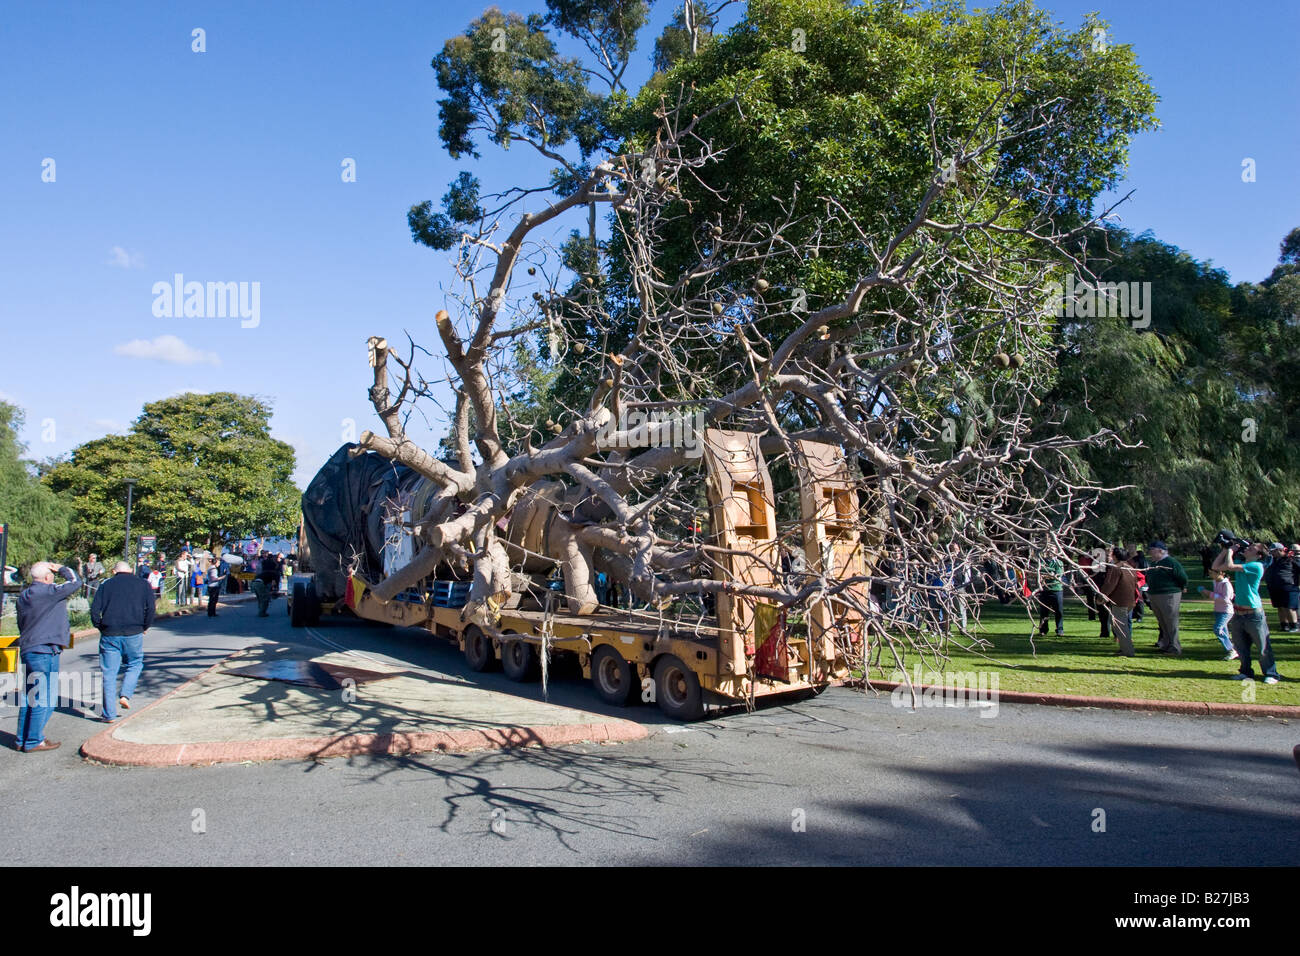 A boab tree arrives in King's Park in Perth after its 3200km journey from Warmun in the Kimberley. - Stock Image